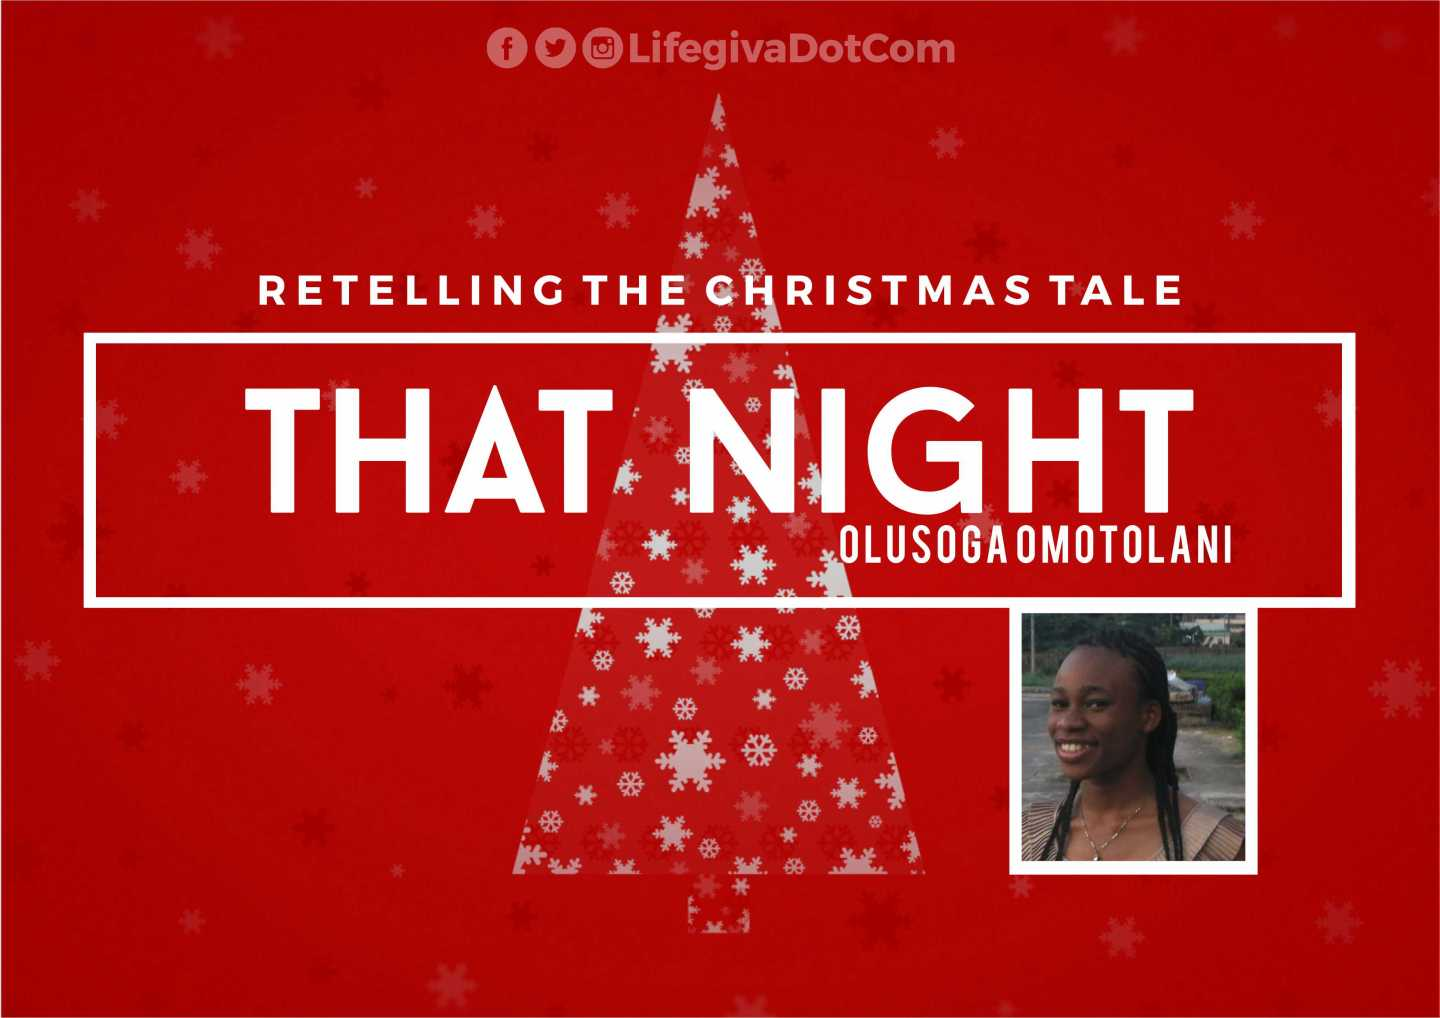 That Night - Olusoga Omotolani